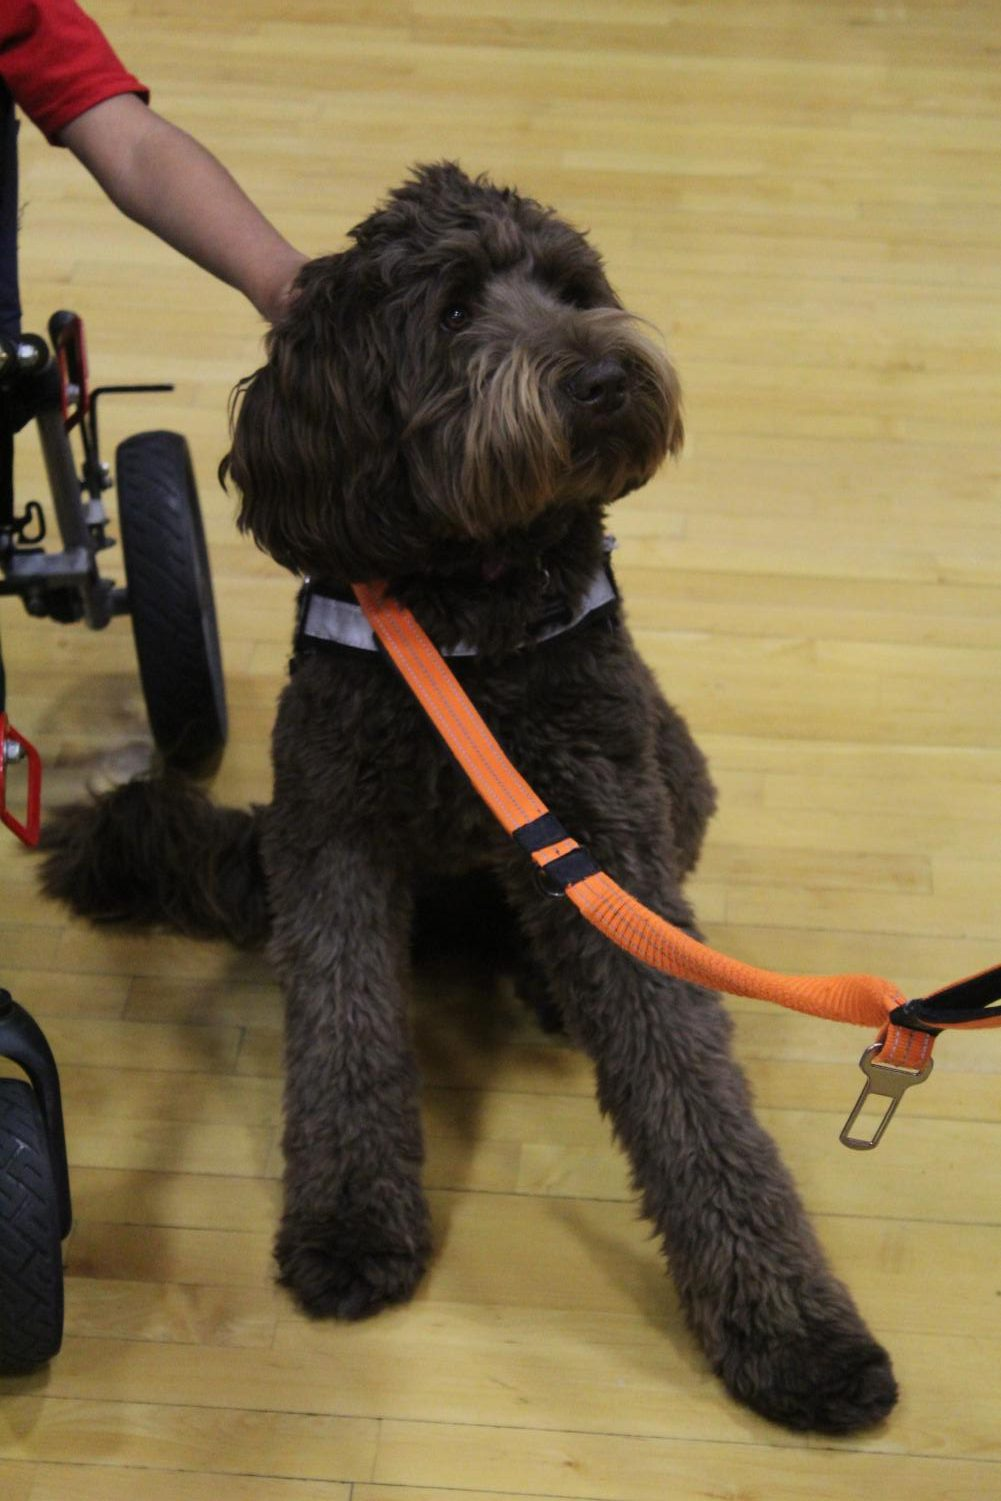 Thomas Jefferson's therapy dog, Summitt, posing for the camera at Special Olympics on November 1st, 2019.